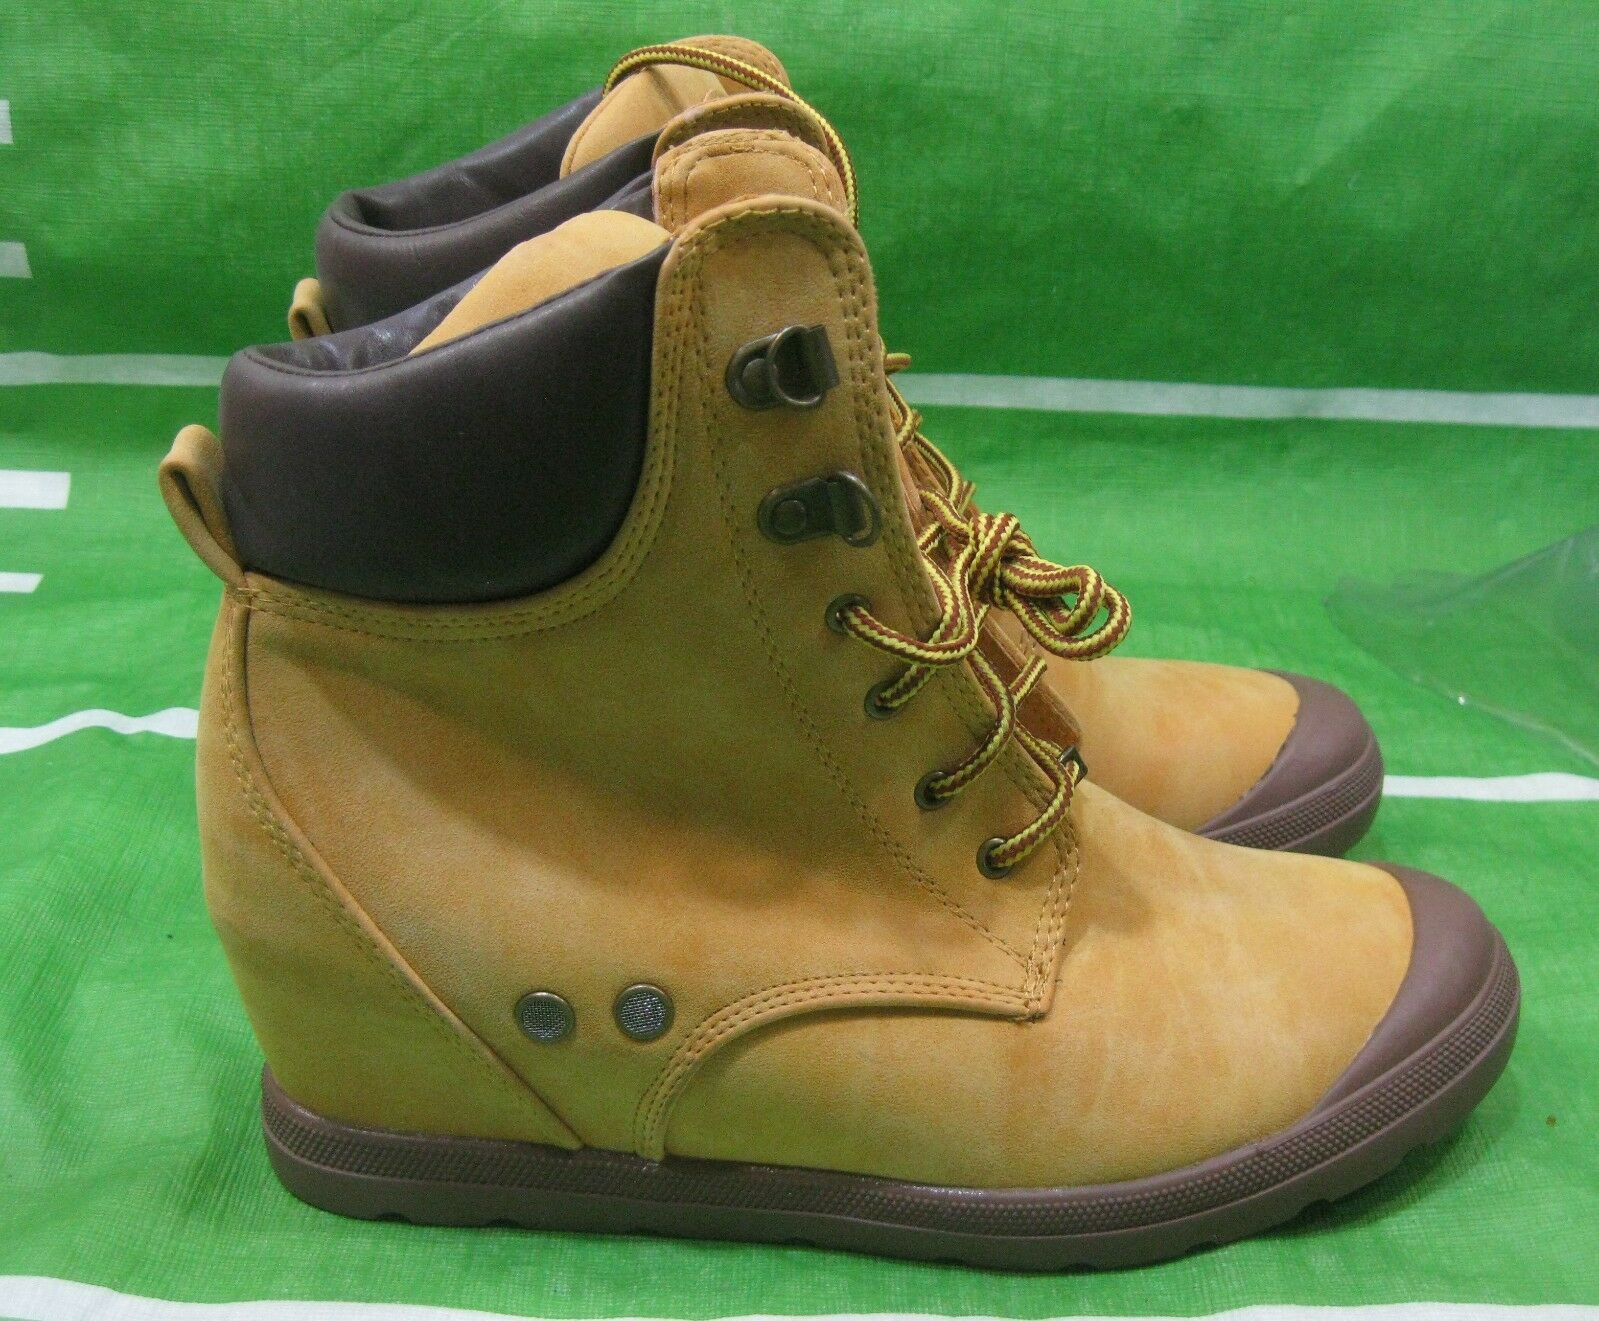 New ladies wheat 2.5 hidden Wedge Heel Round Toe lace up Ankle Boots Size 9.5